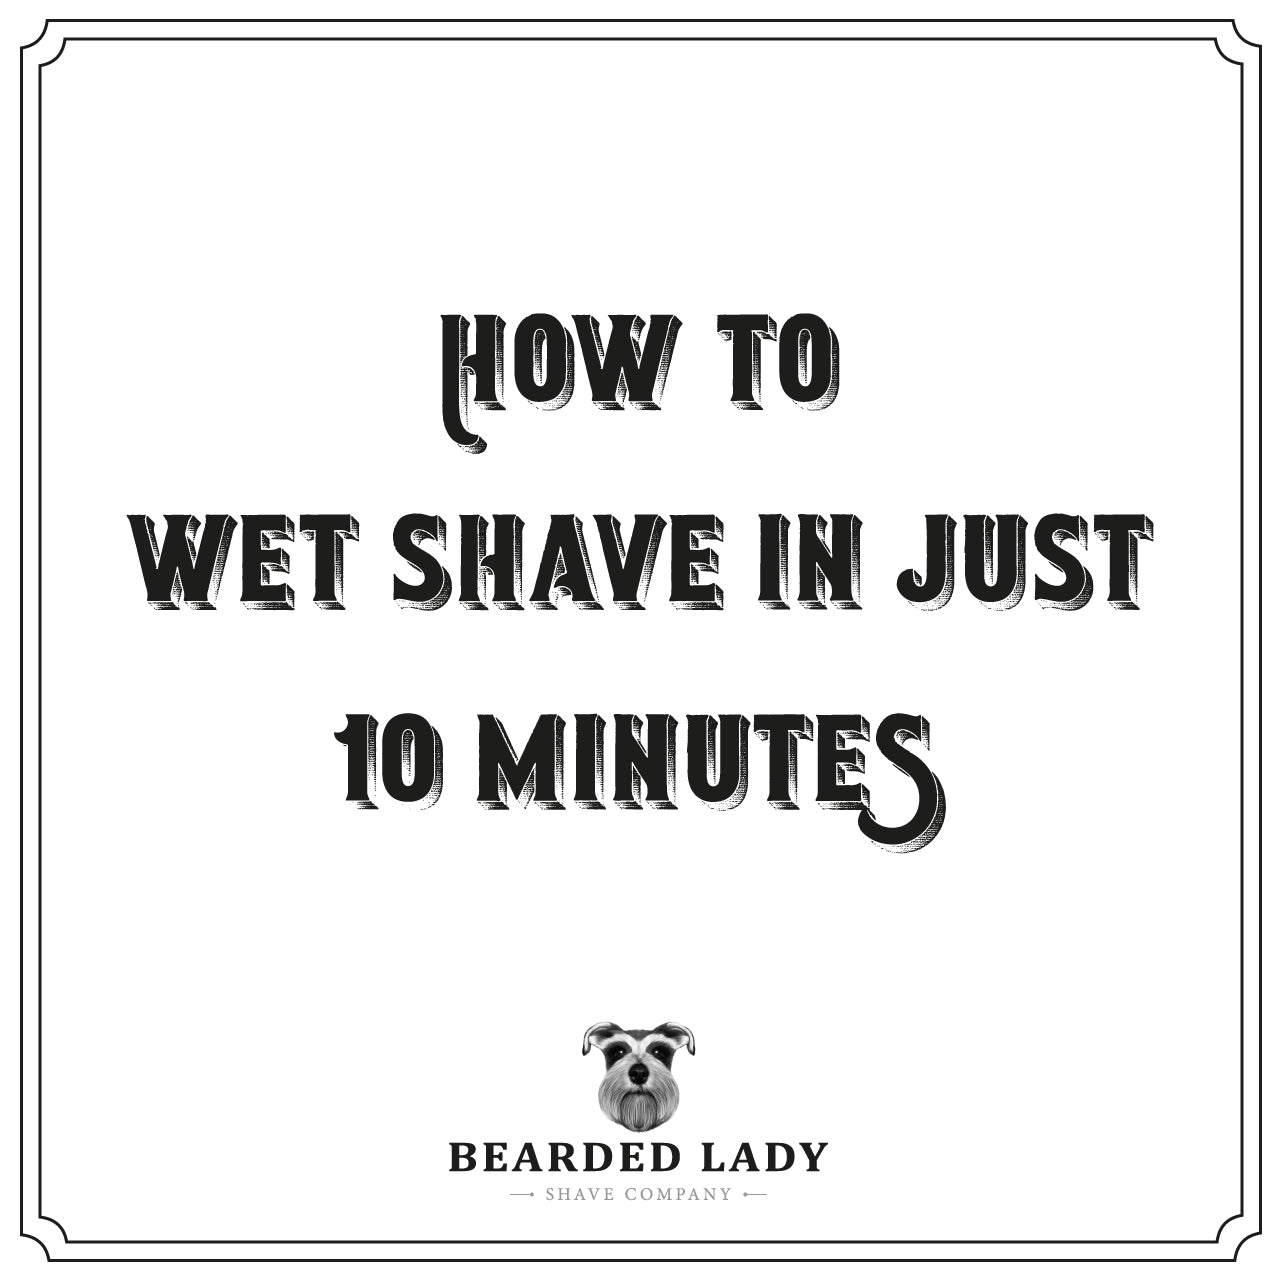 How to Wet Shave in Just 10 Minutes